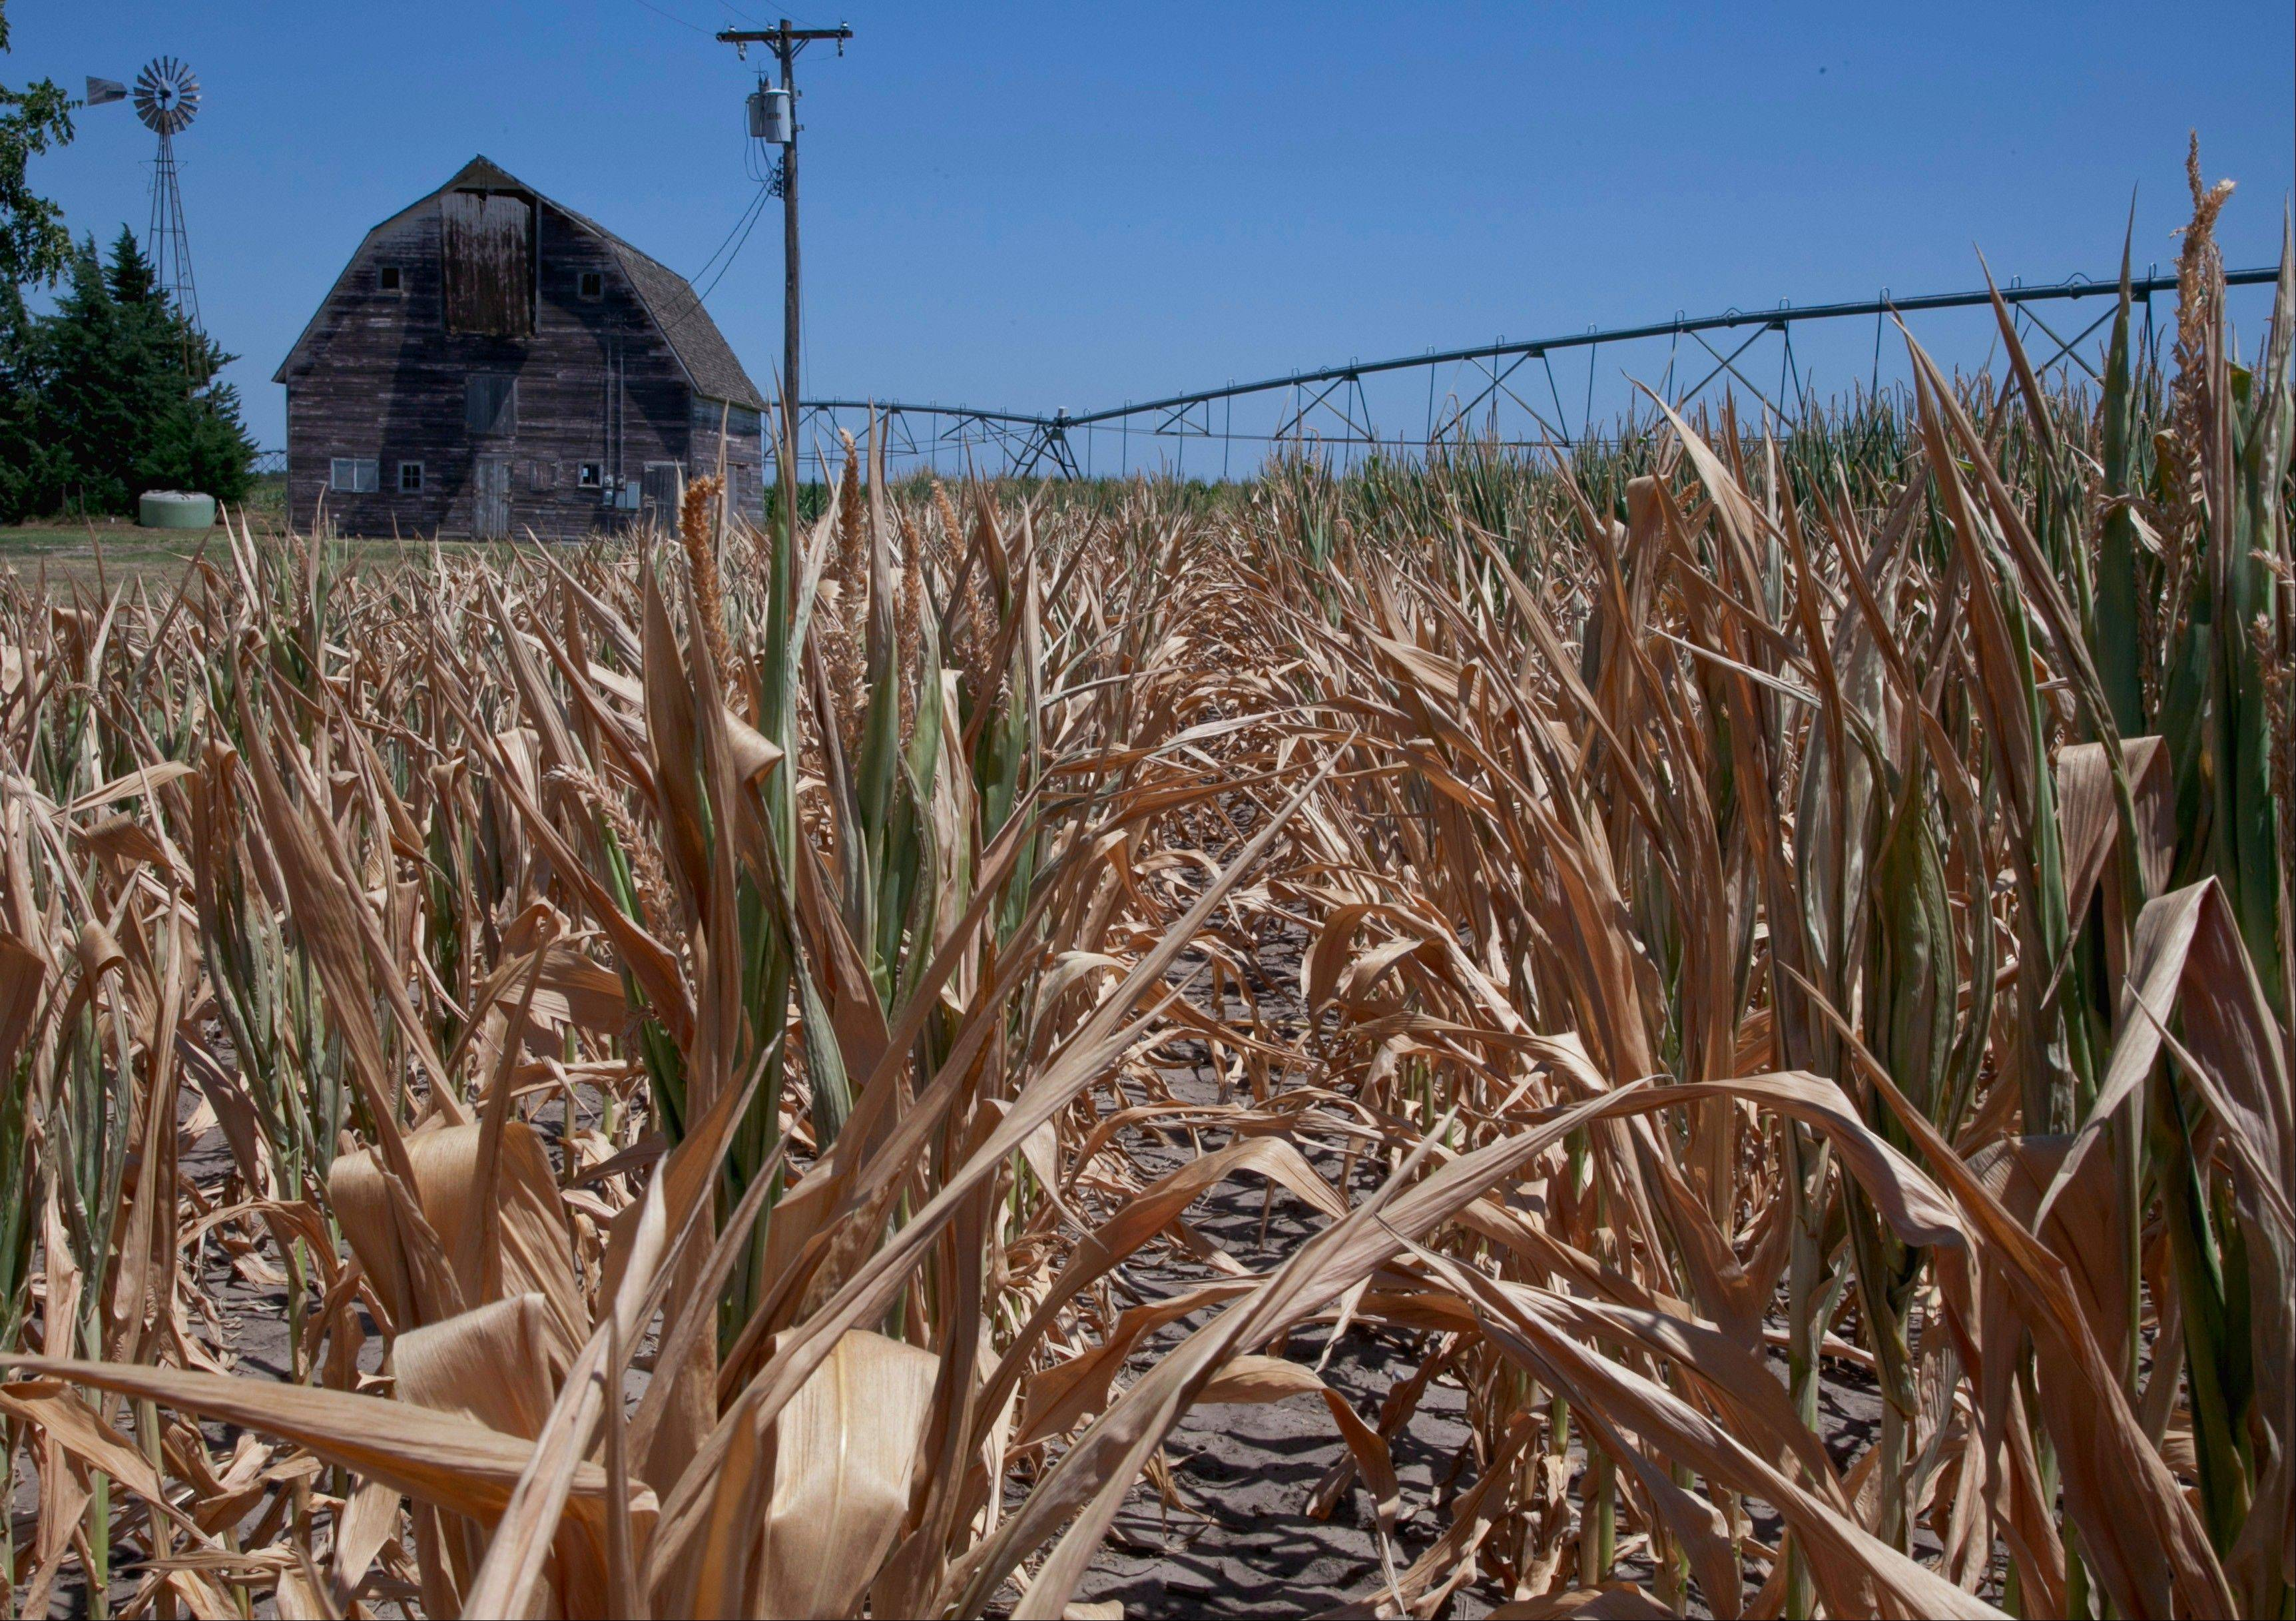 A dry field of corn is seen near Fremont, Neb., Monday. The drought gripping the United States is the widest since 1956, according to new data released by the National Oceanic and Atmospheric Administration.